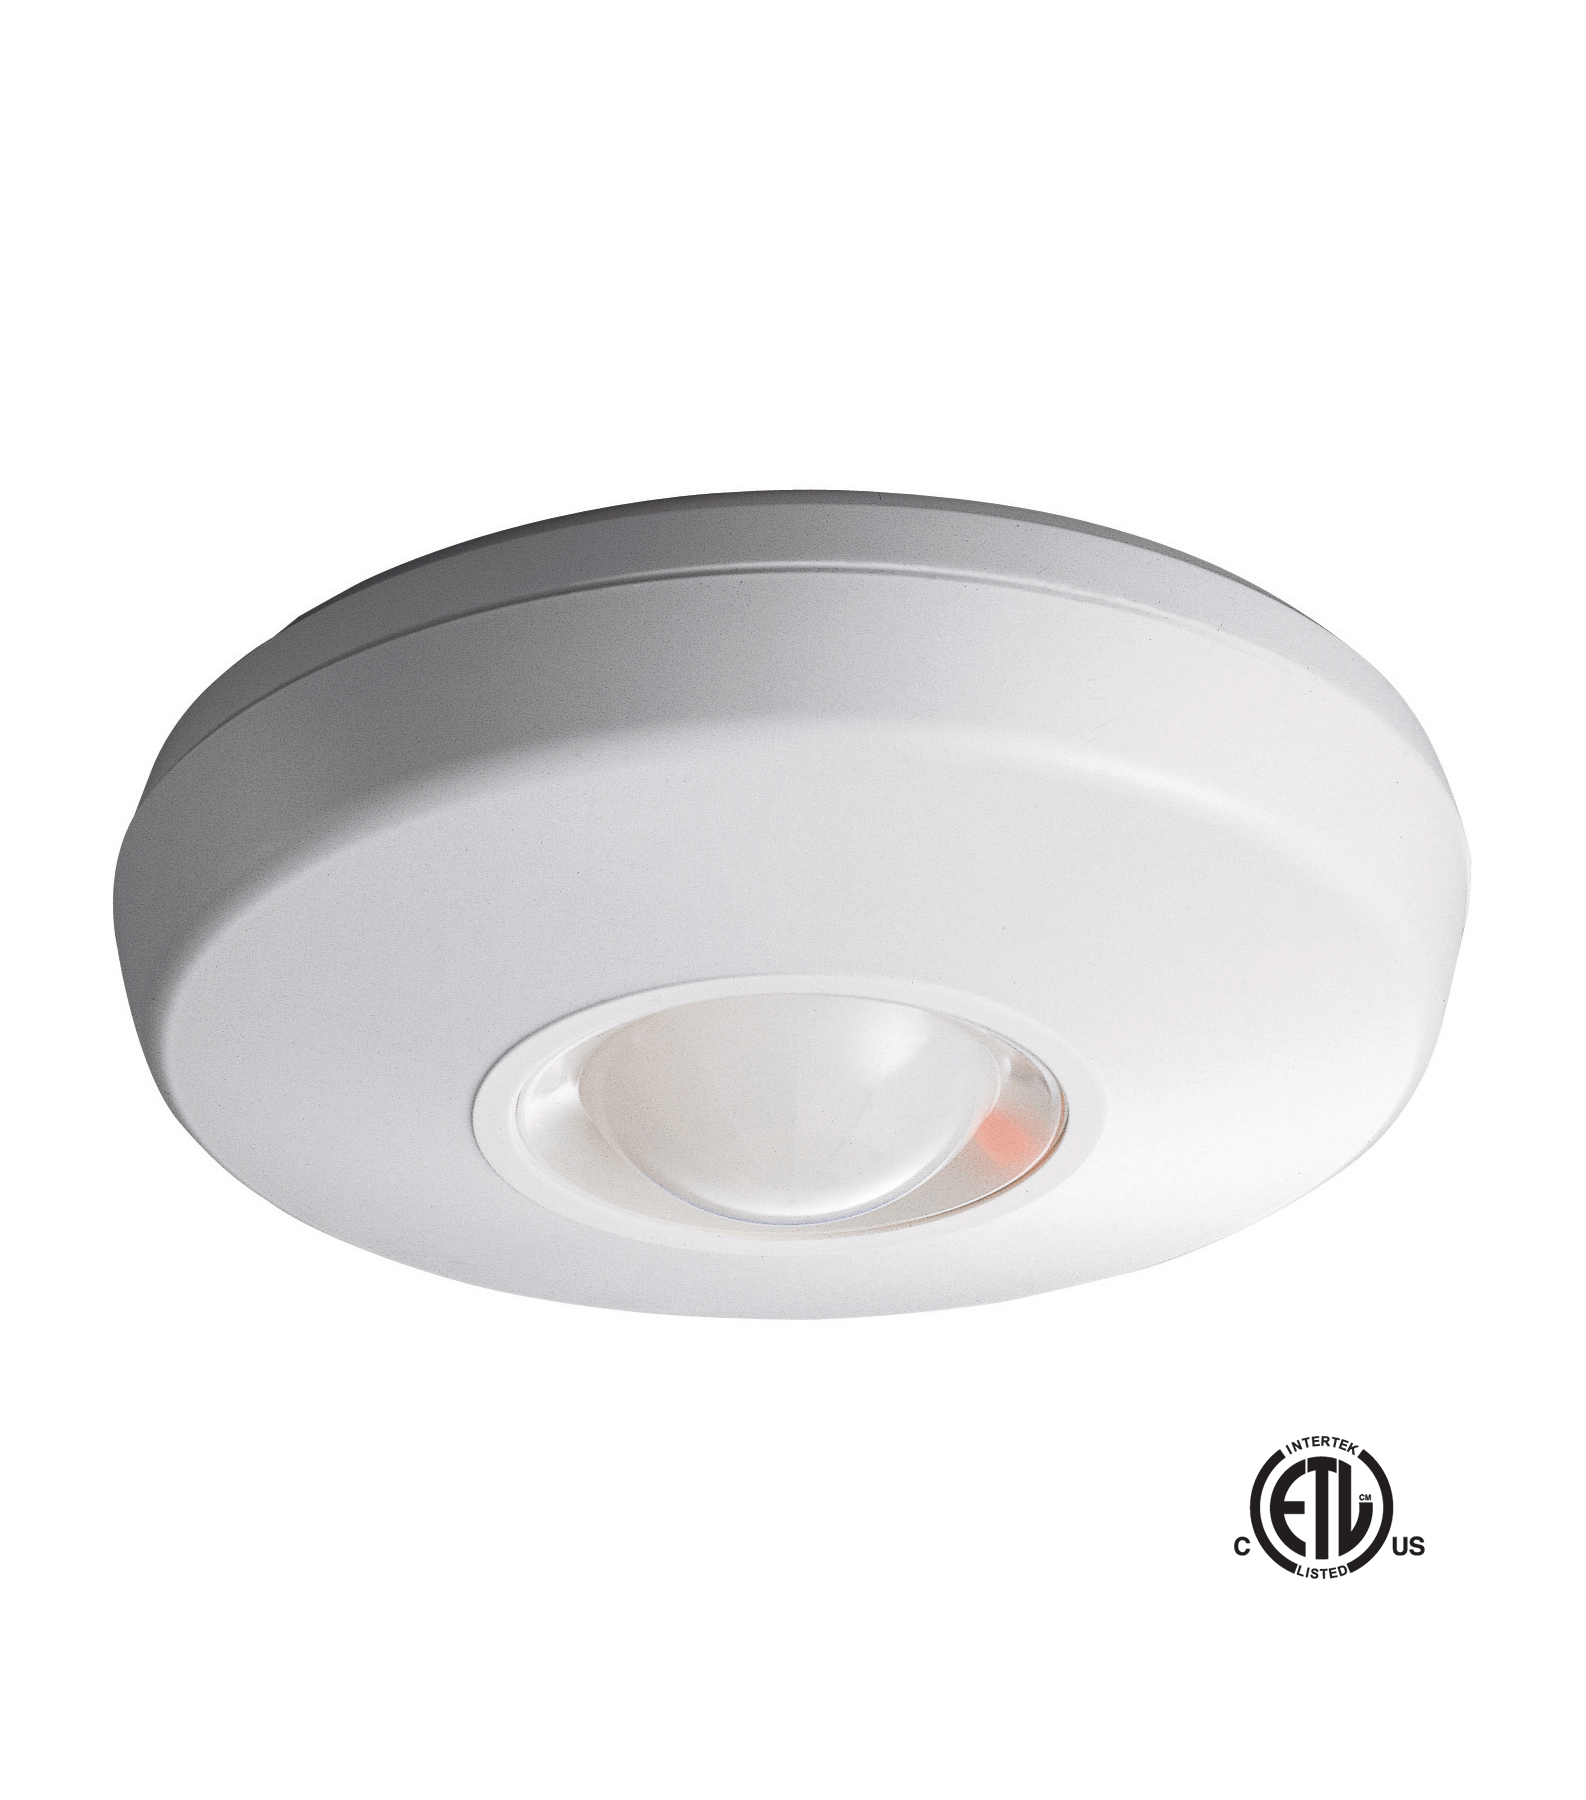 WFX-360HW OPTEX Wireless 360 PIR for Honeywell 5800 Series ************************* SPECIAL ORDER ITEM NO RETURNS OR SUBJECT TO RESTOCK FEE *************************